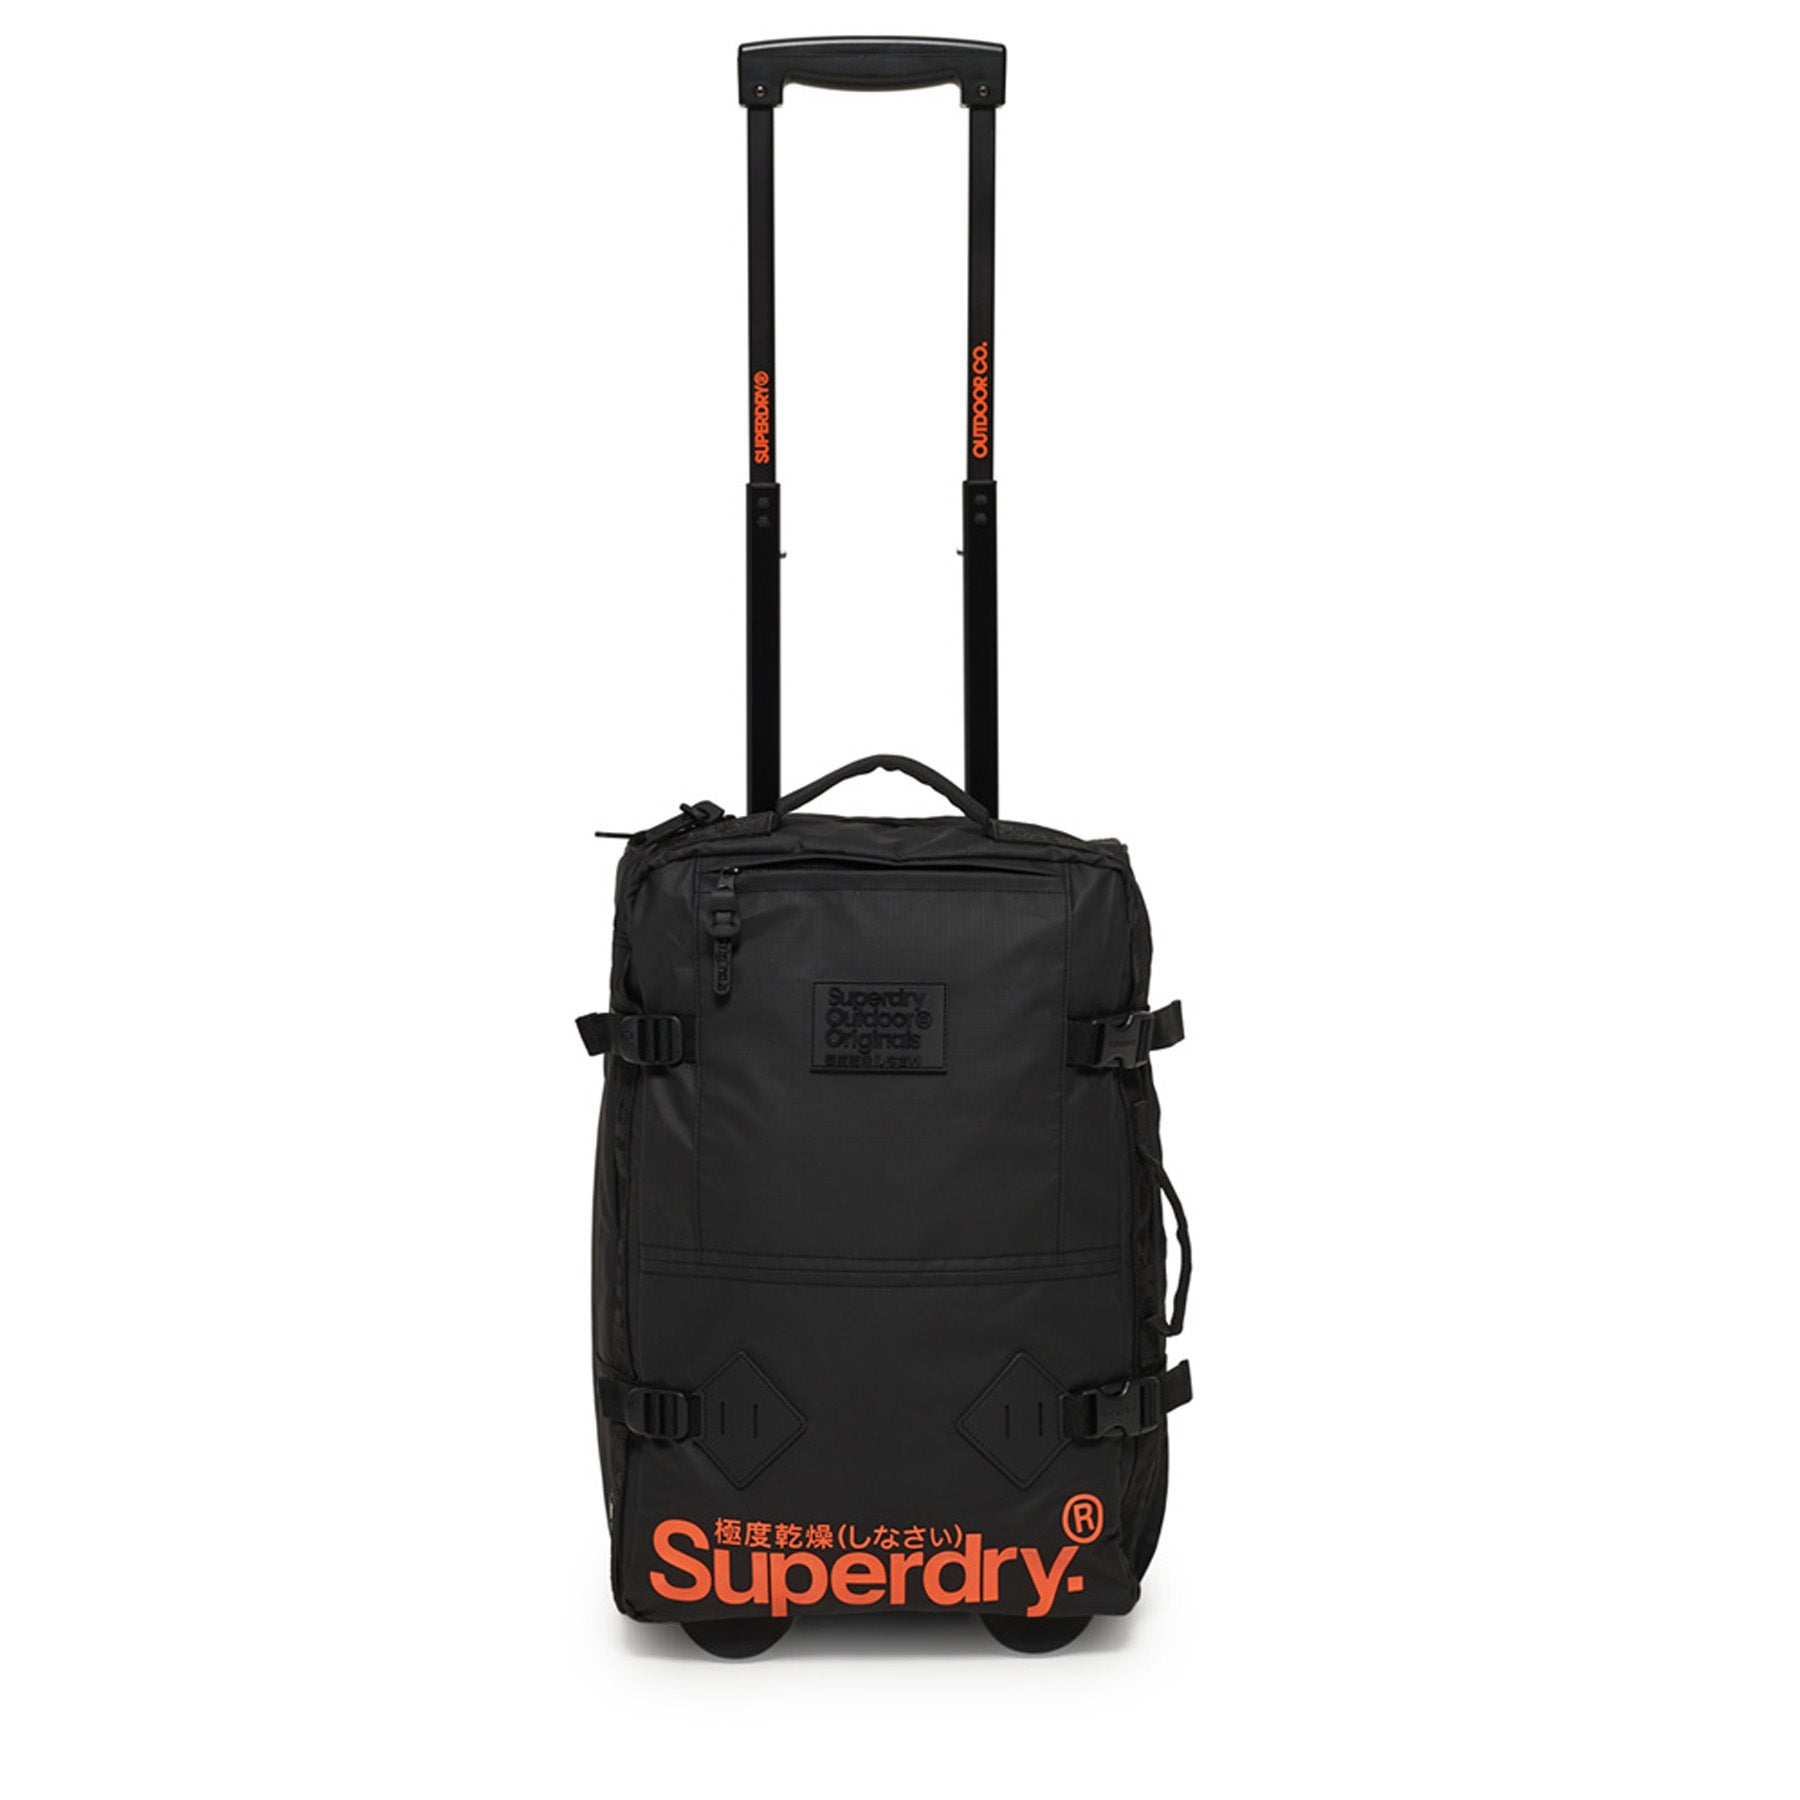 Bagagem de Mão Superdry Travel Range Small Cabin Case - Black